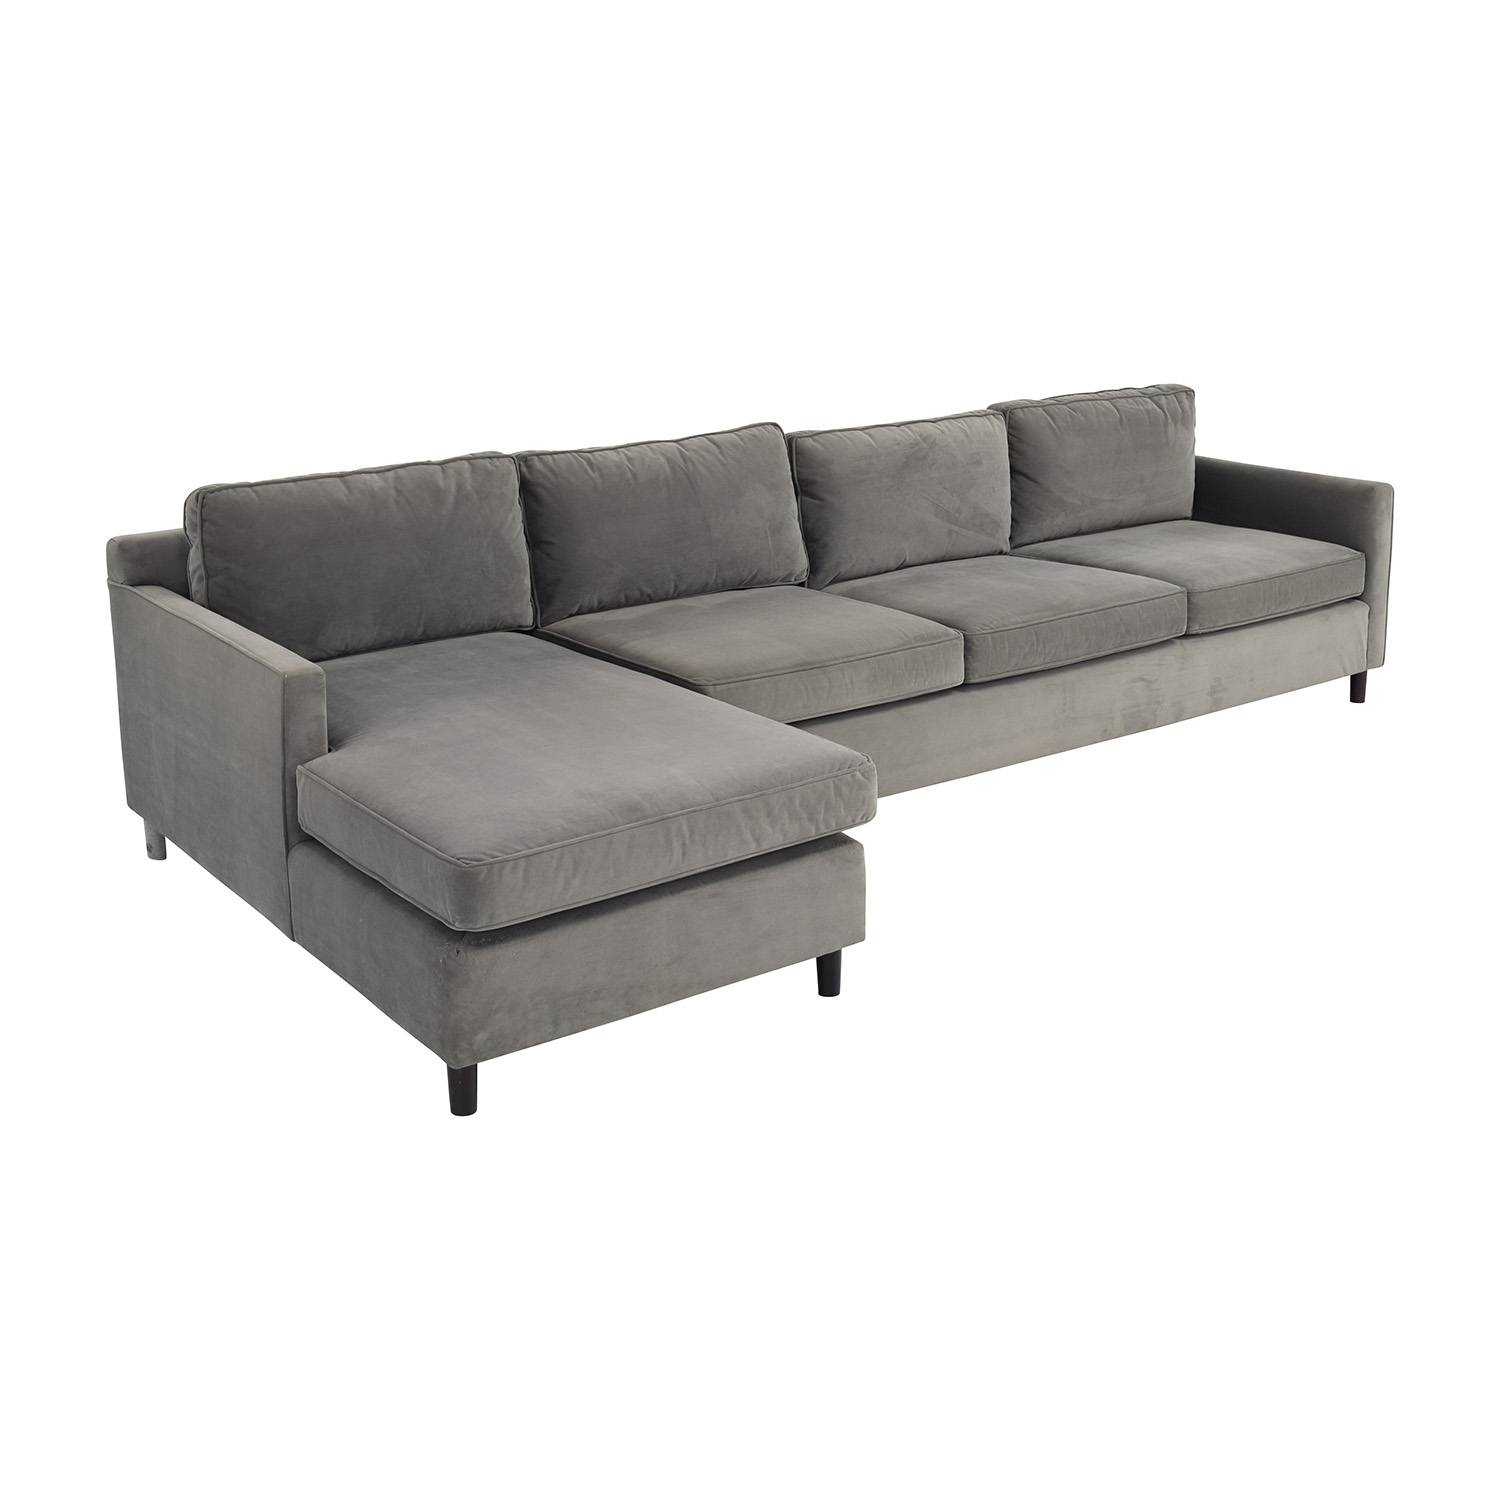 ... Shop Mitchell Gold U0026 Bob Williams Grey Chaise Sectional Mitchell Gold  And Bob Williams Sectionals ...